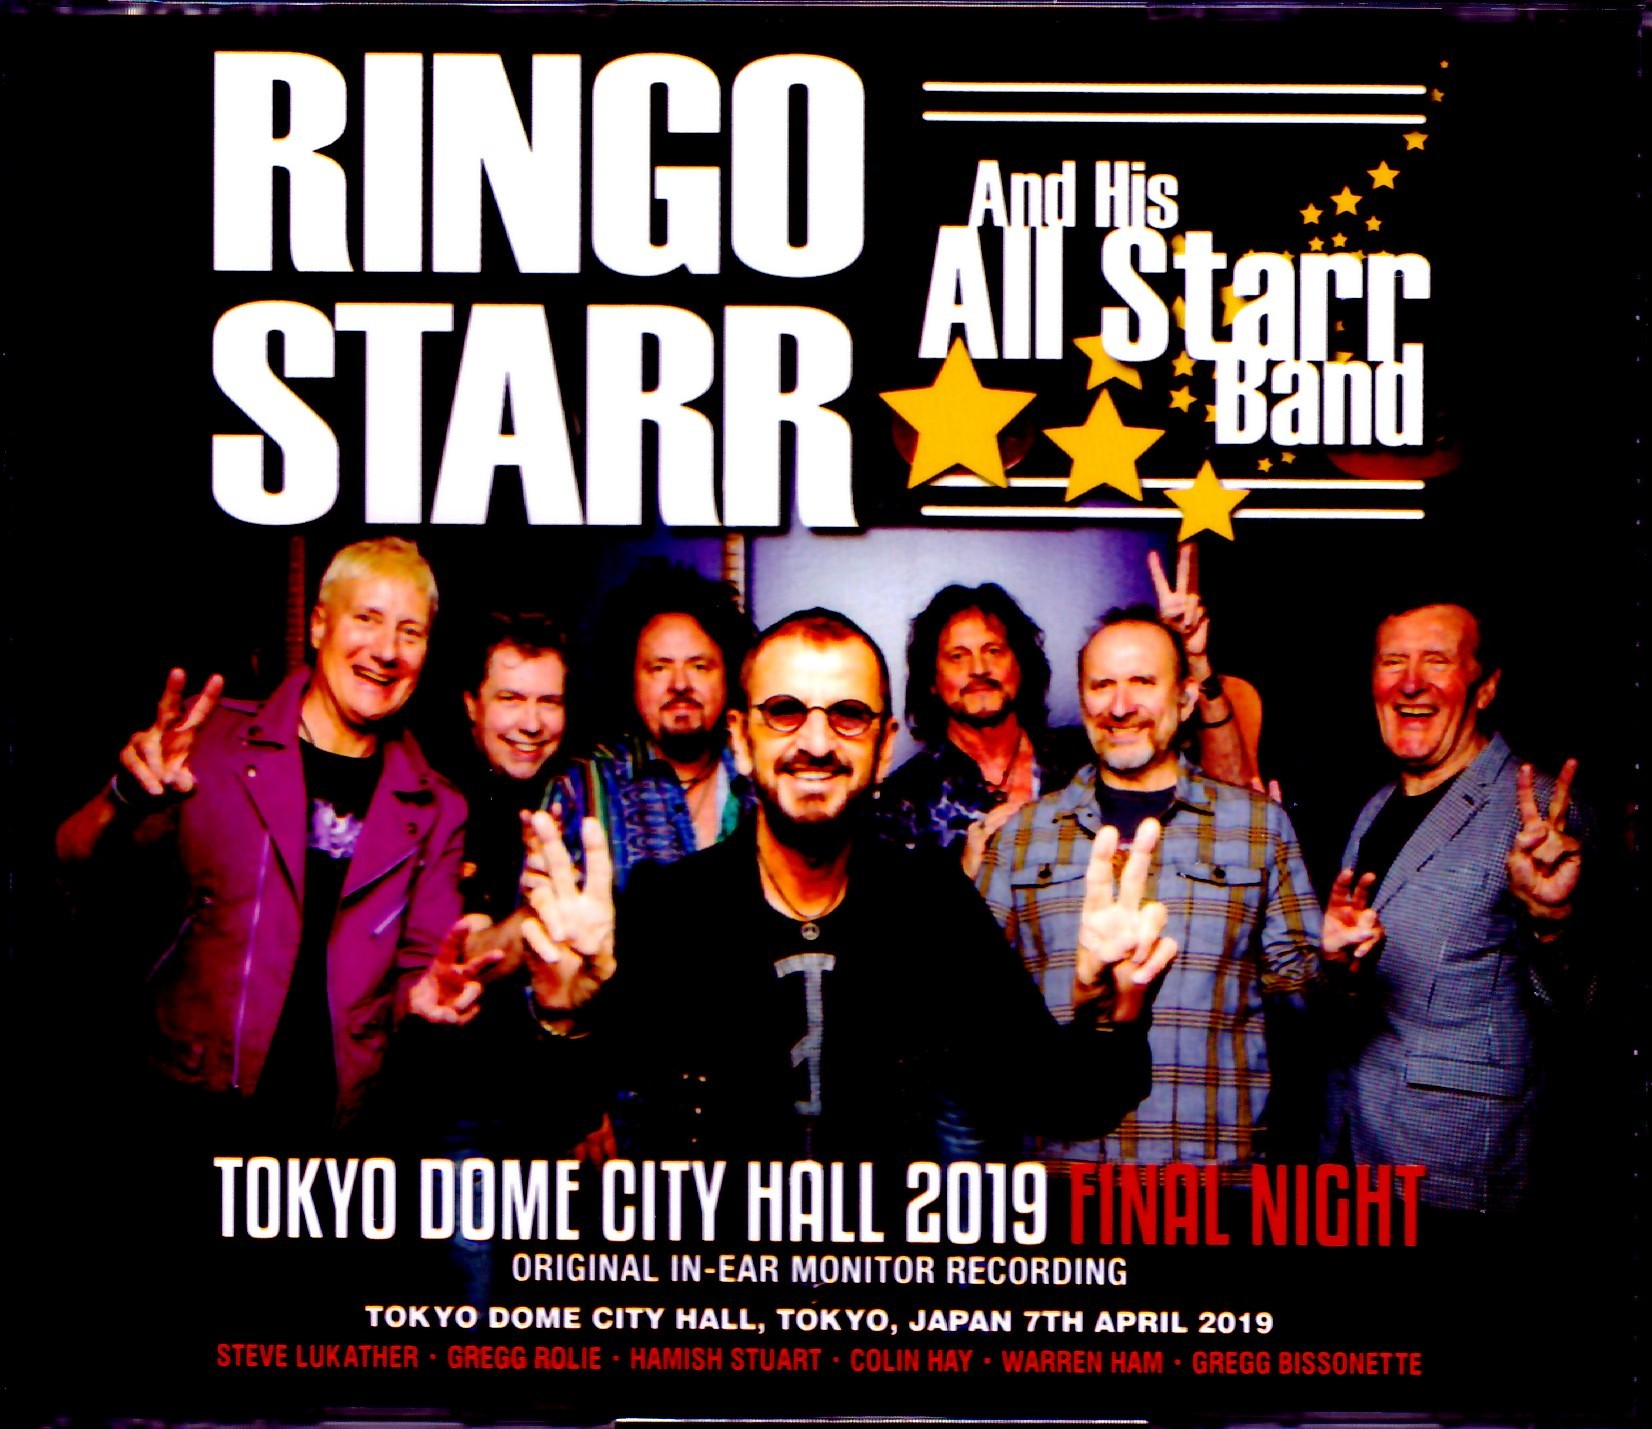 Ringo Starr and His All Starr Band リンゴ・スター/Tokyo,Japan 4.7.2019 & SC IEM Matrix Ver.